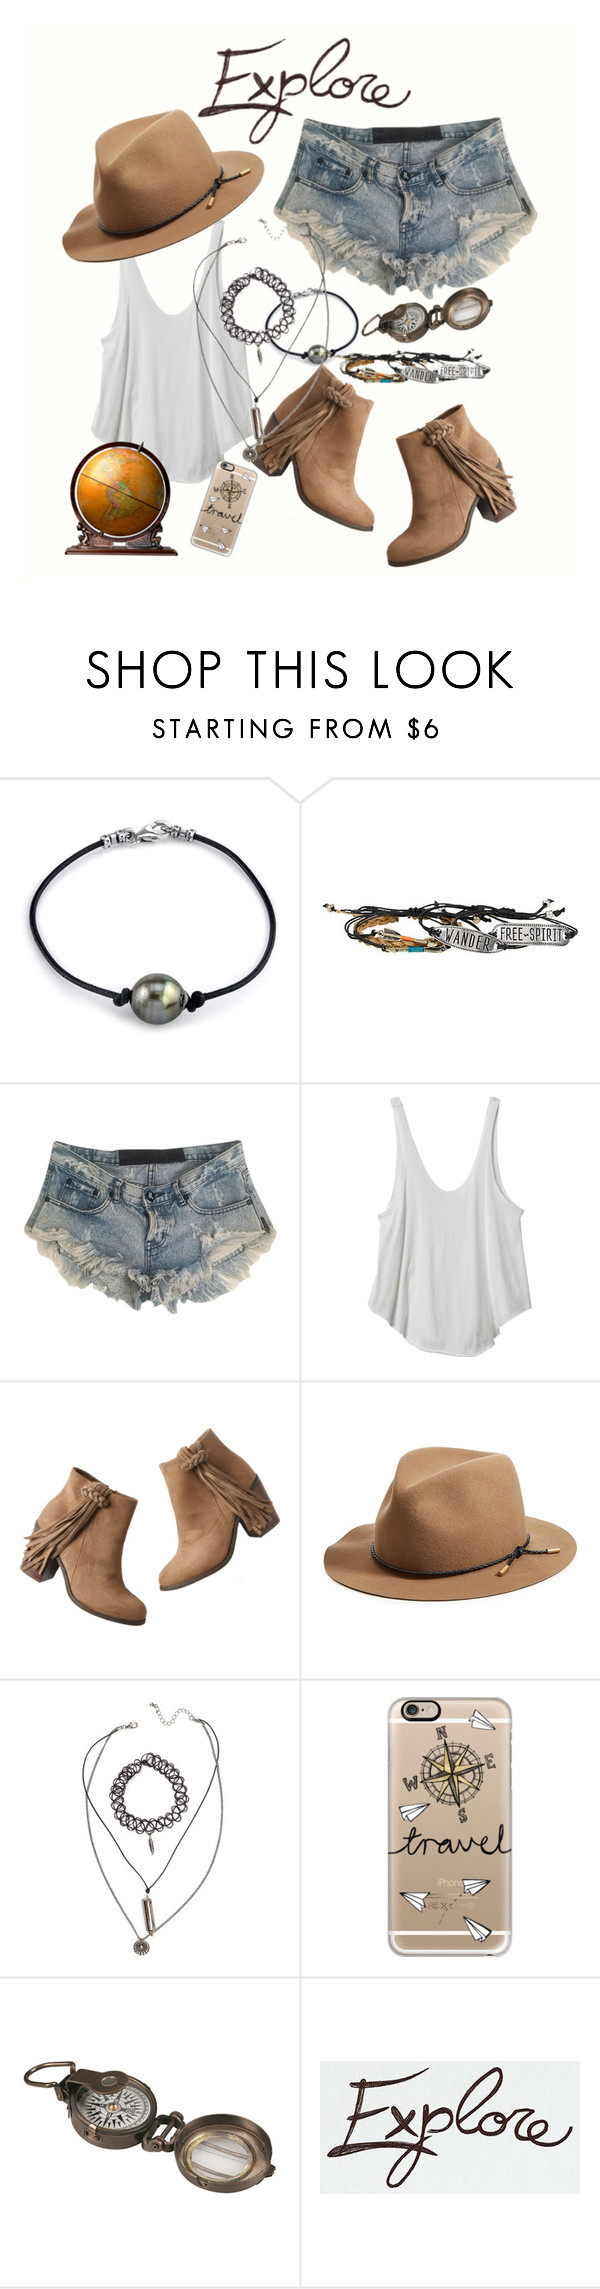 """Explore."" by jeehewson ❤ liked on Polyvore featuring One Teaspoon, RVCA, maurices, rag & bone, Casetify and Dot & Bo"